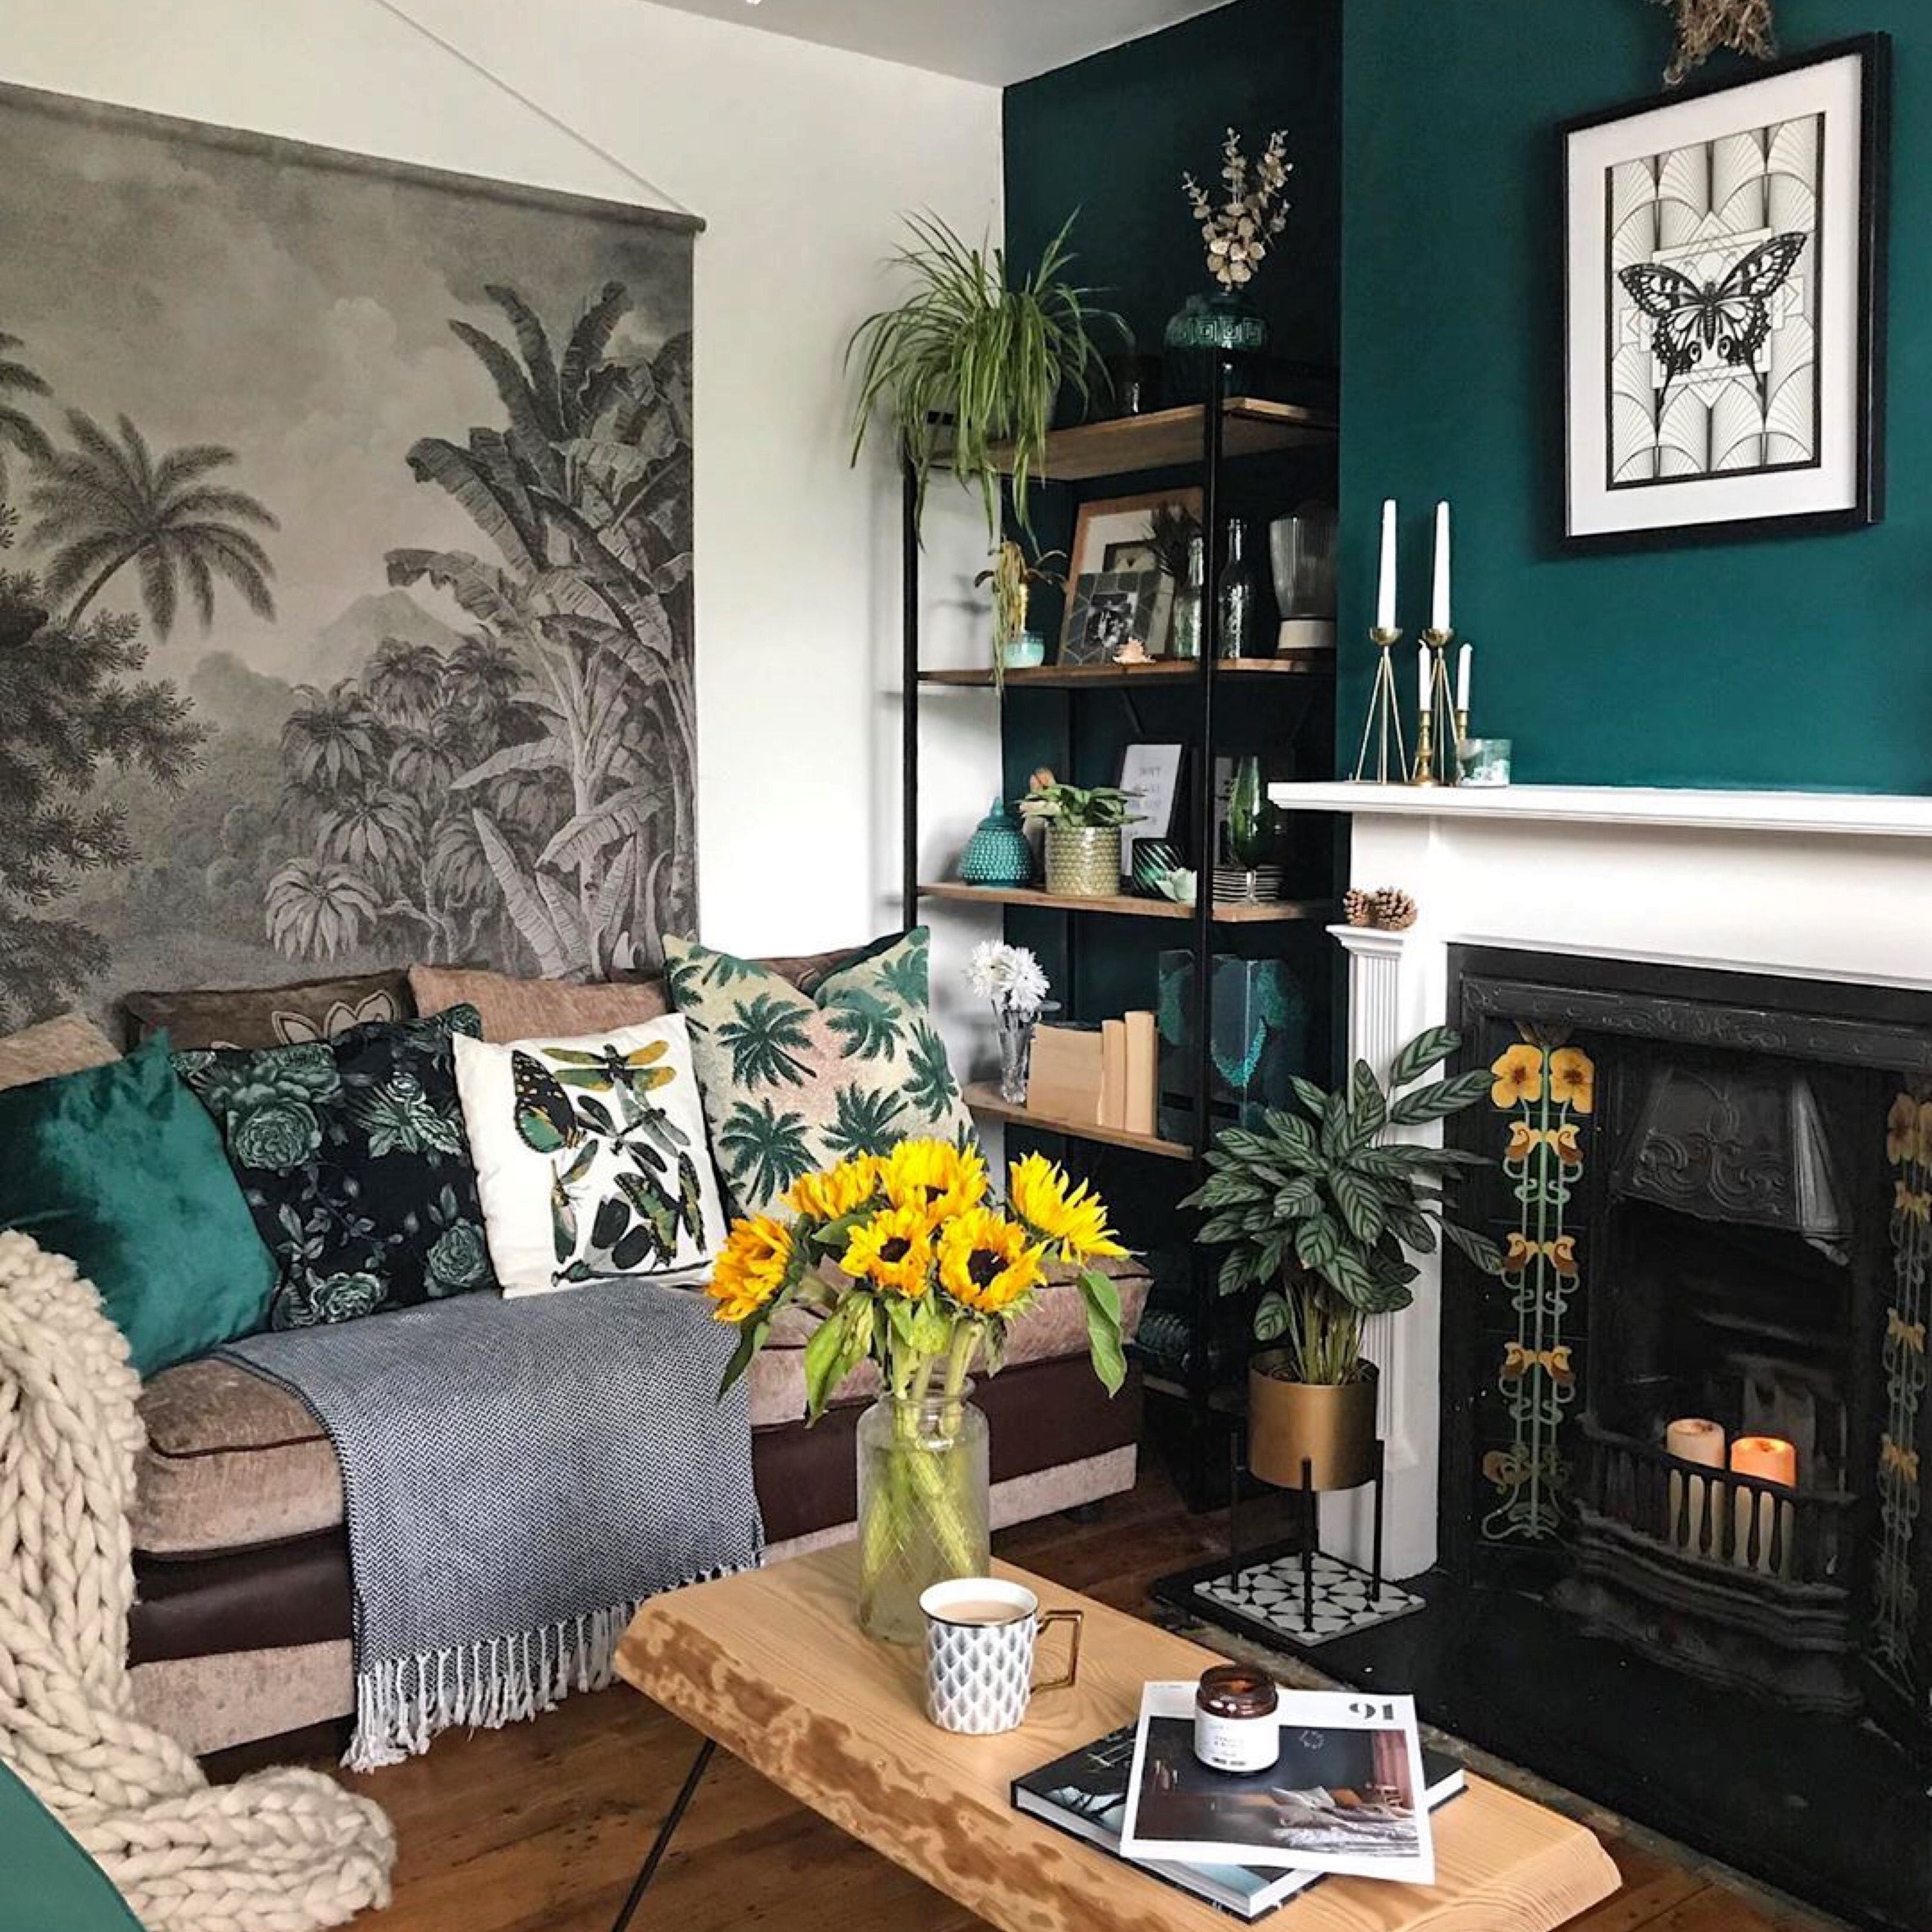 Cast Iron Fireplace With Victorian Inspired Tiles Living Room Color Schemes Green Walls Living Room Living Room Color